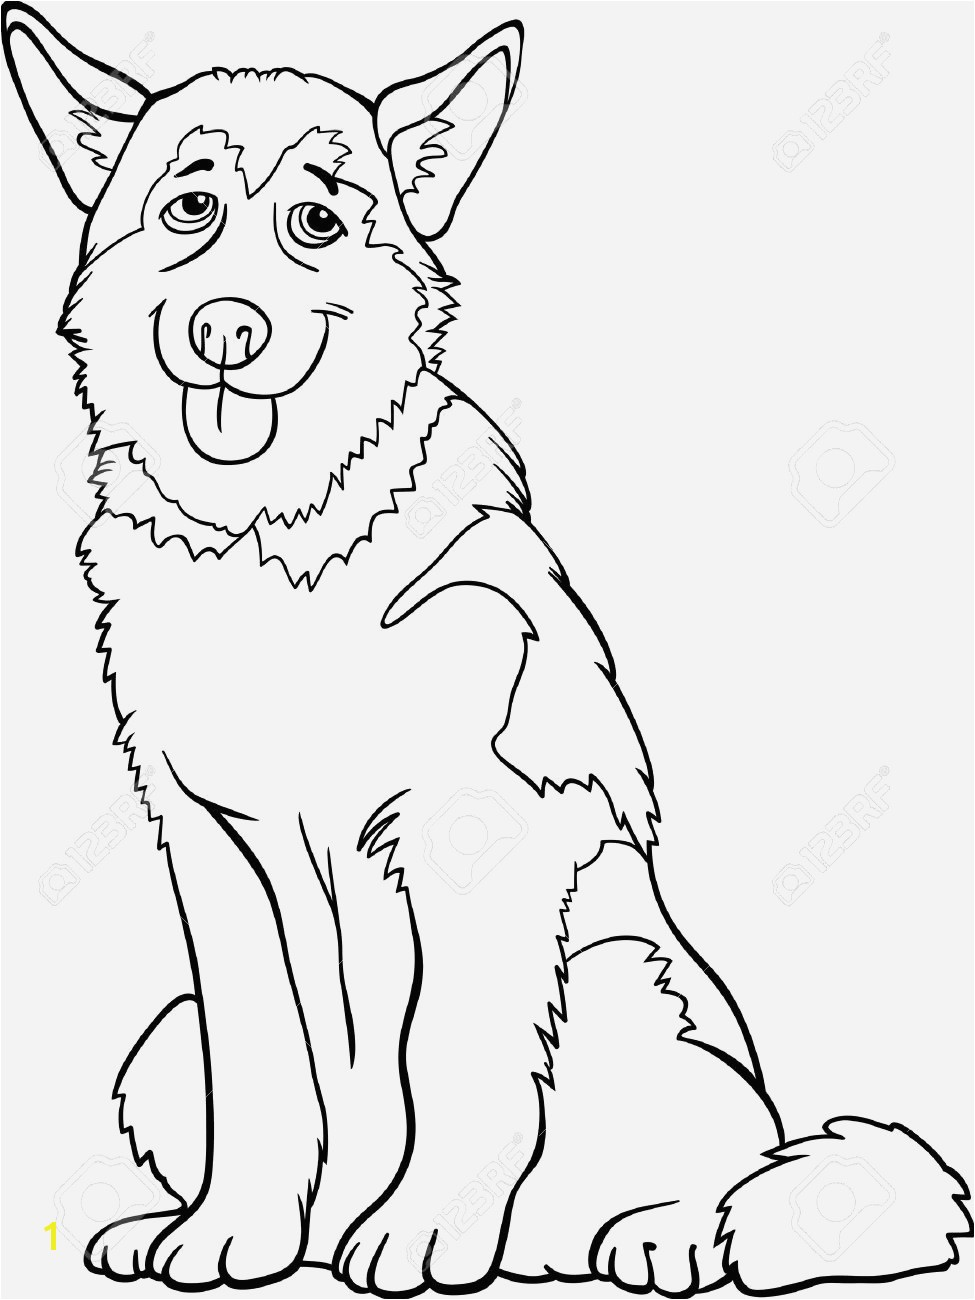 Free Coloring Pages Printable Animals Fresh Free Printable Coloring Pages Animals Husky Coloring 0d Free